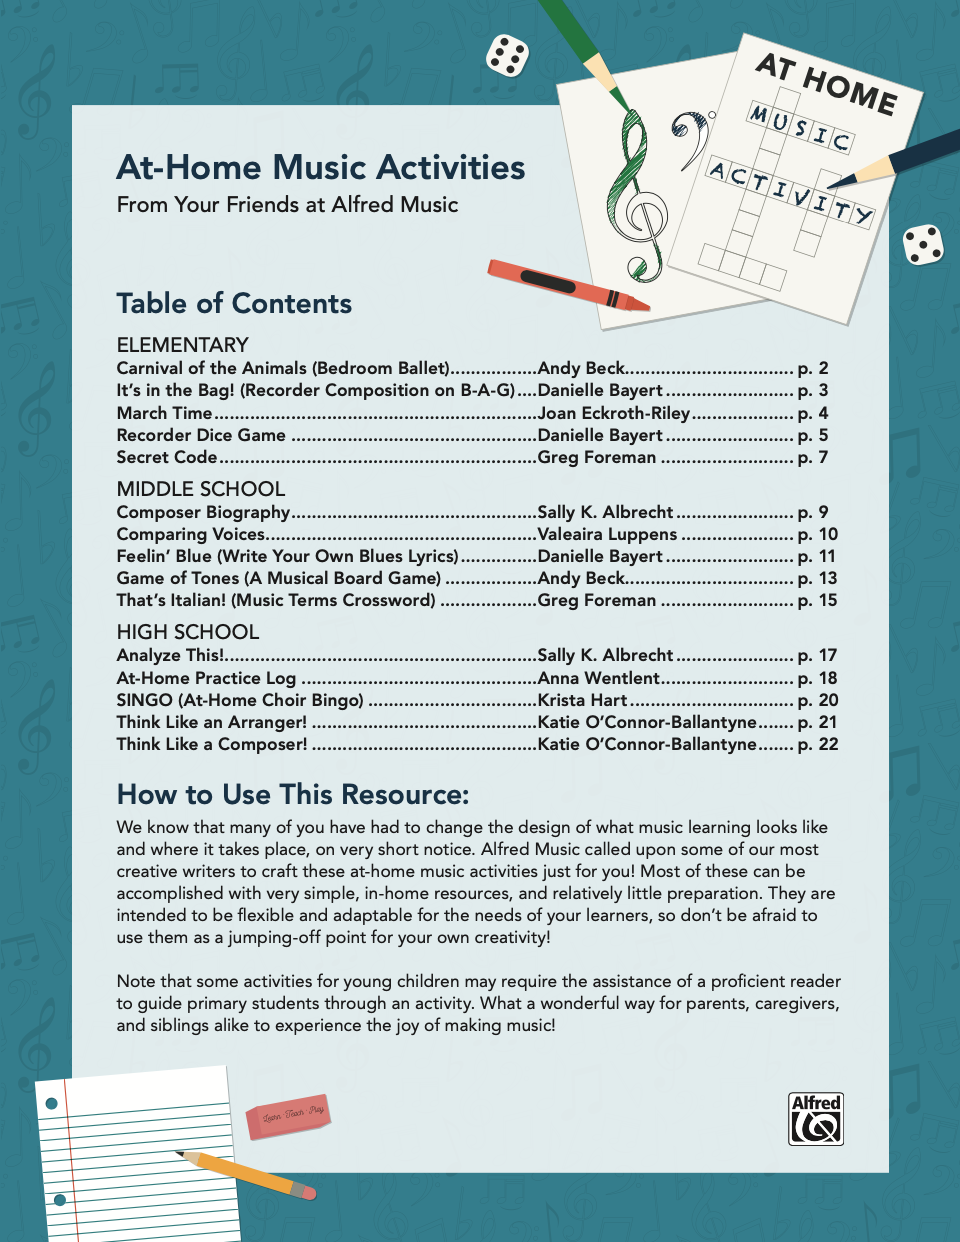 At-Home Activities Image